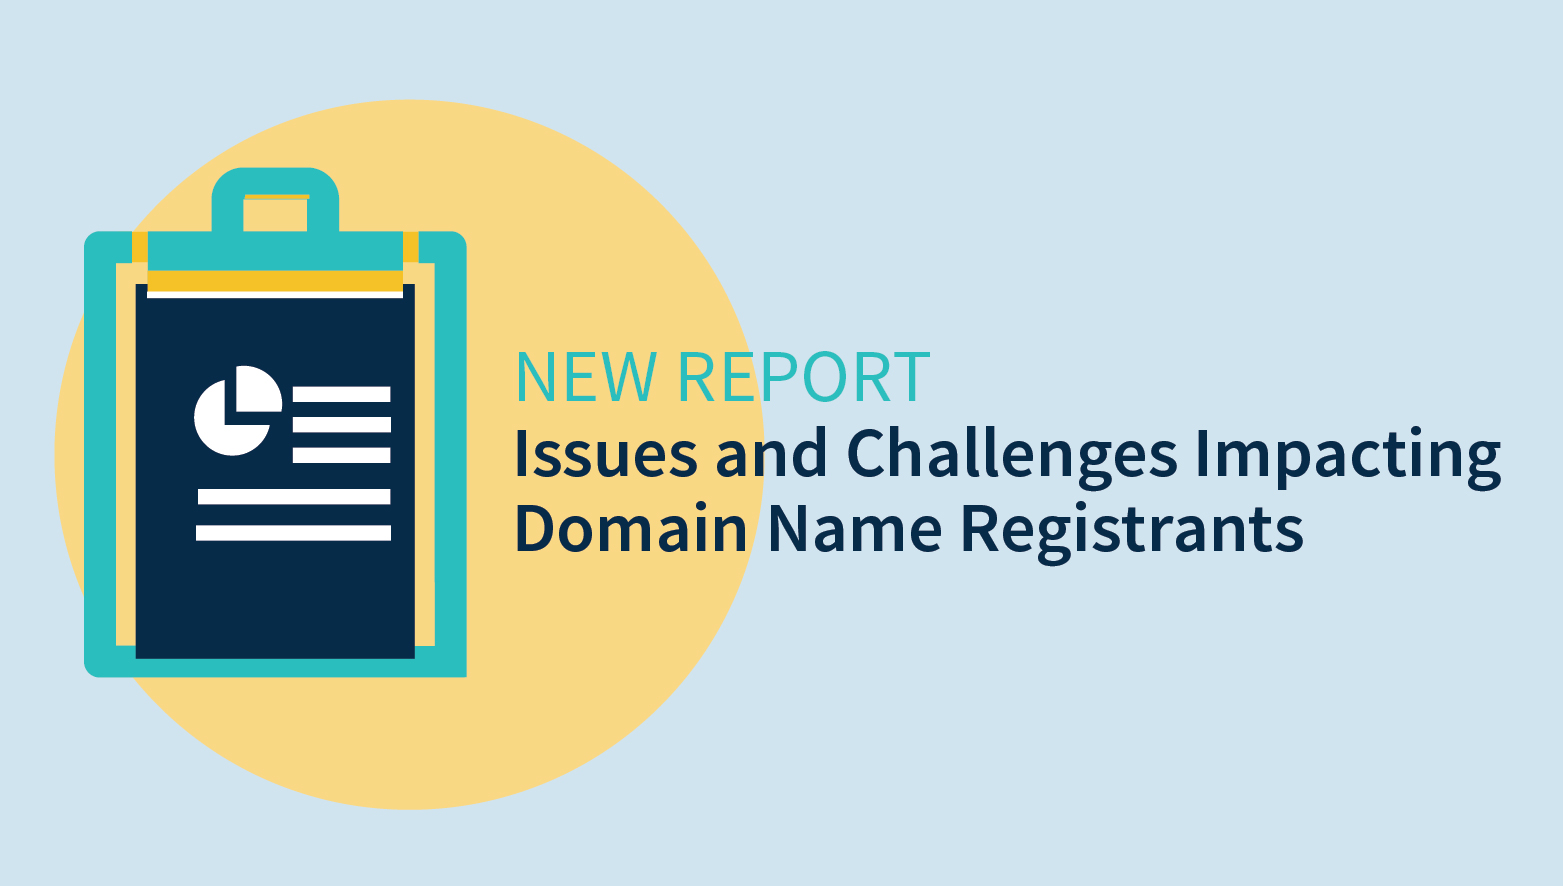 Domain name registrants issues challenges 1563x886 26sep18 zh